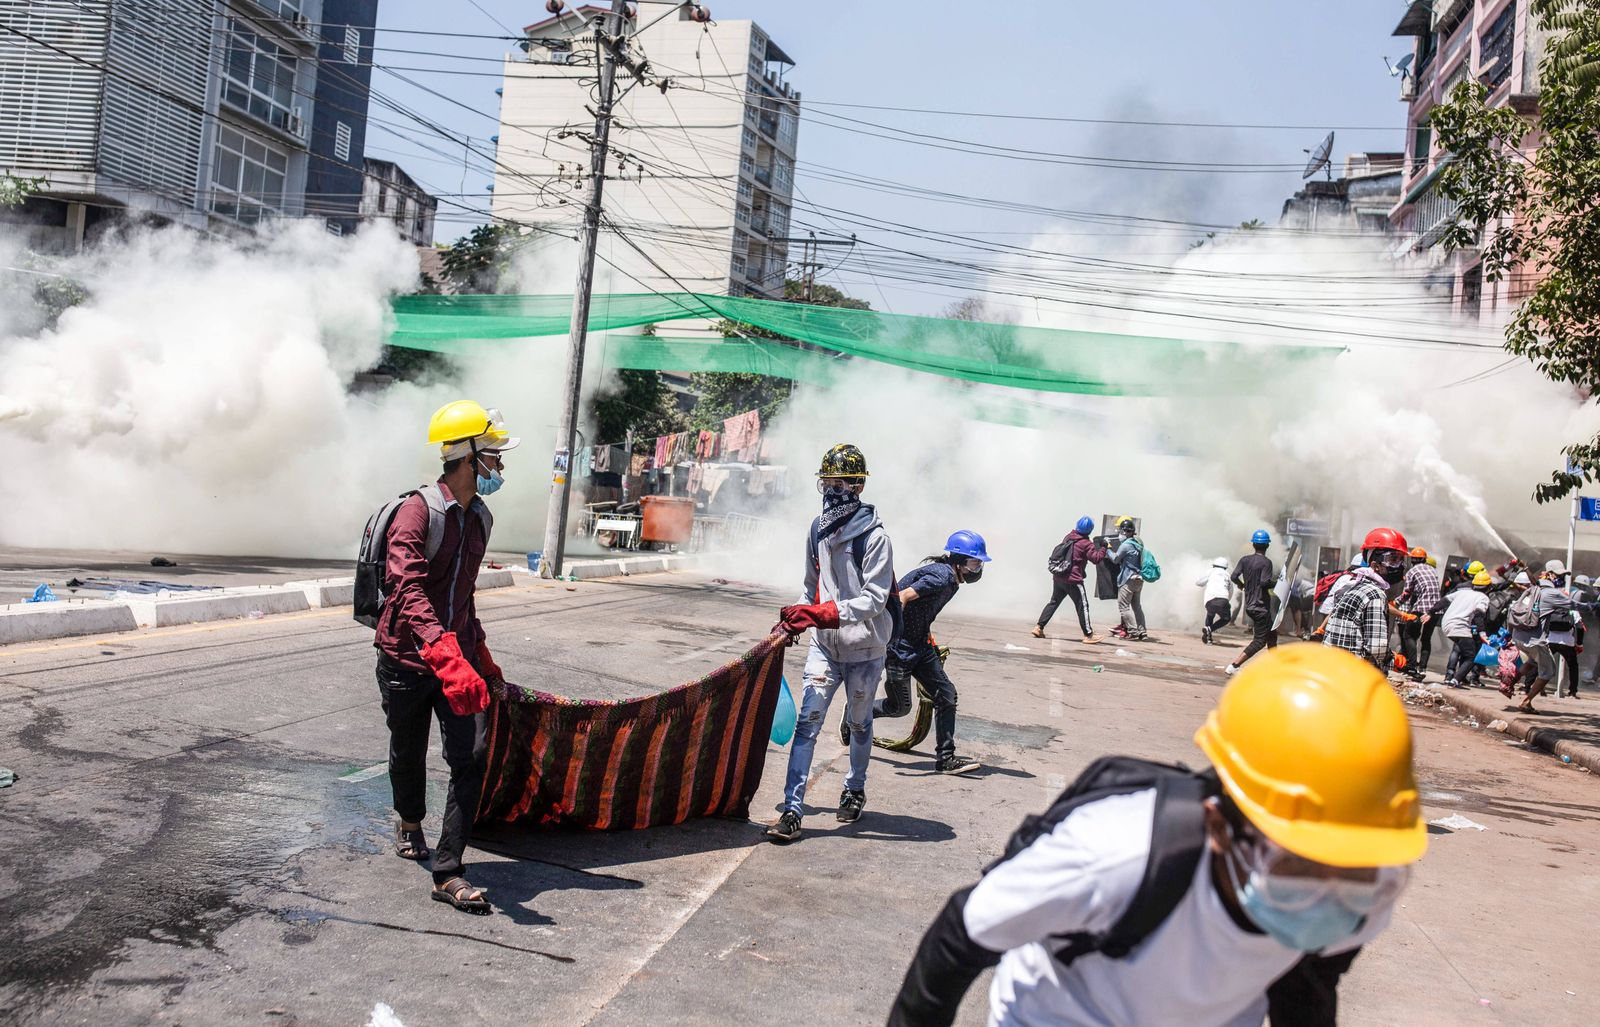 March 7, 2021, Yangon, Myanmar: Protesters react after riot police fired tear gas canisters during a demonstration agai